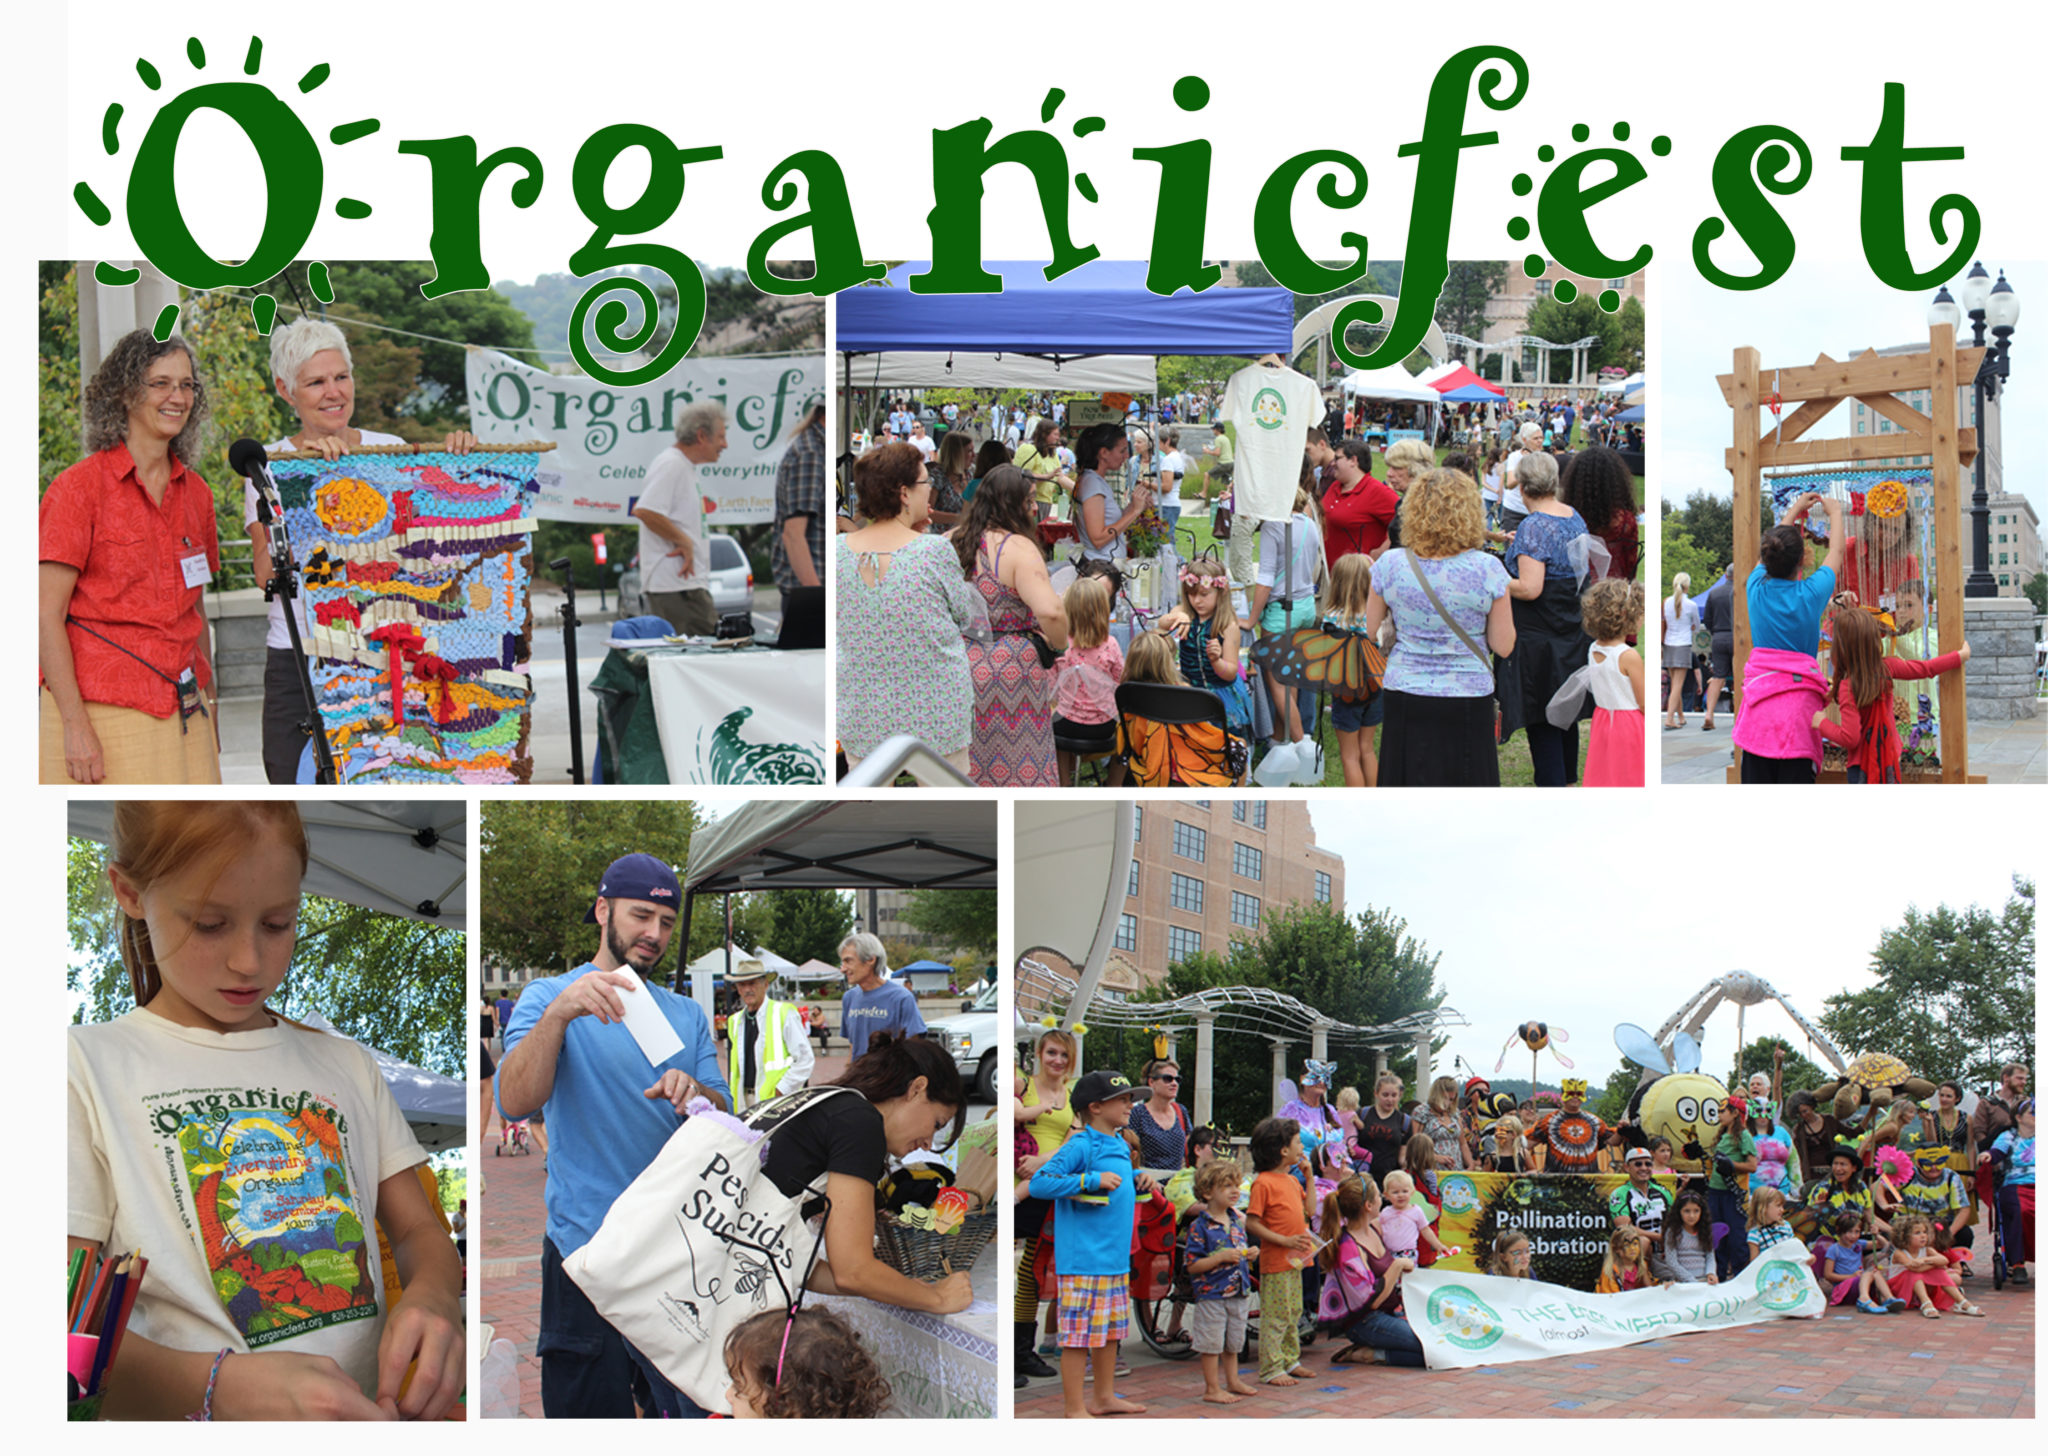 asheville-organic-city-usa